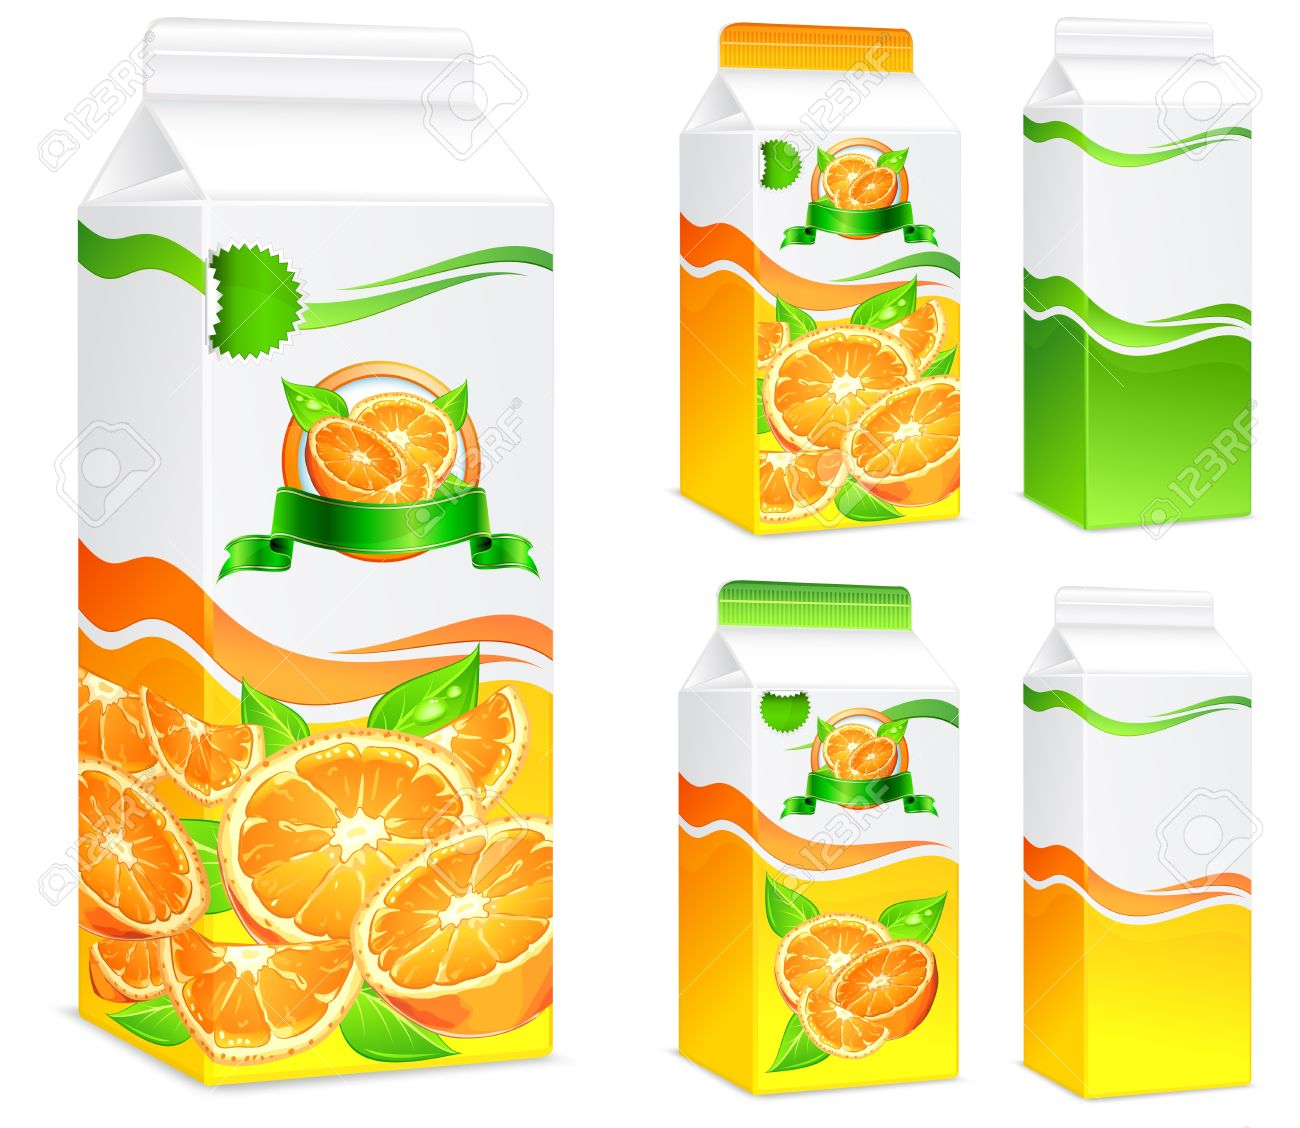 Packages for juice, paper packing with oranges and leaves, vector illustration - 14127659